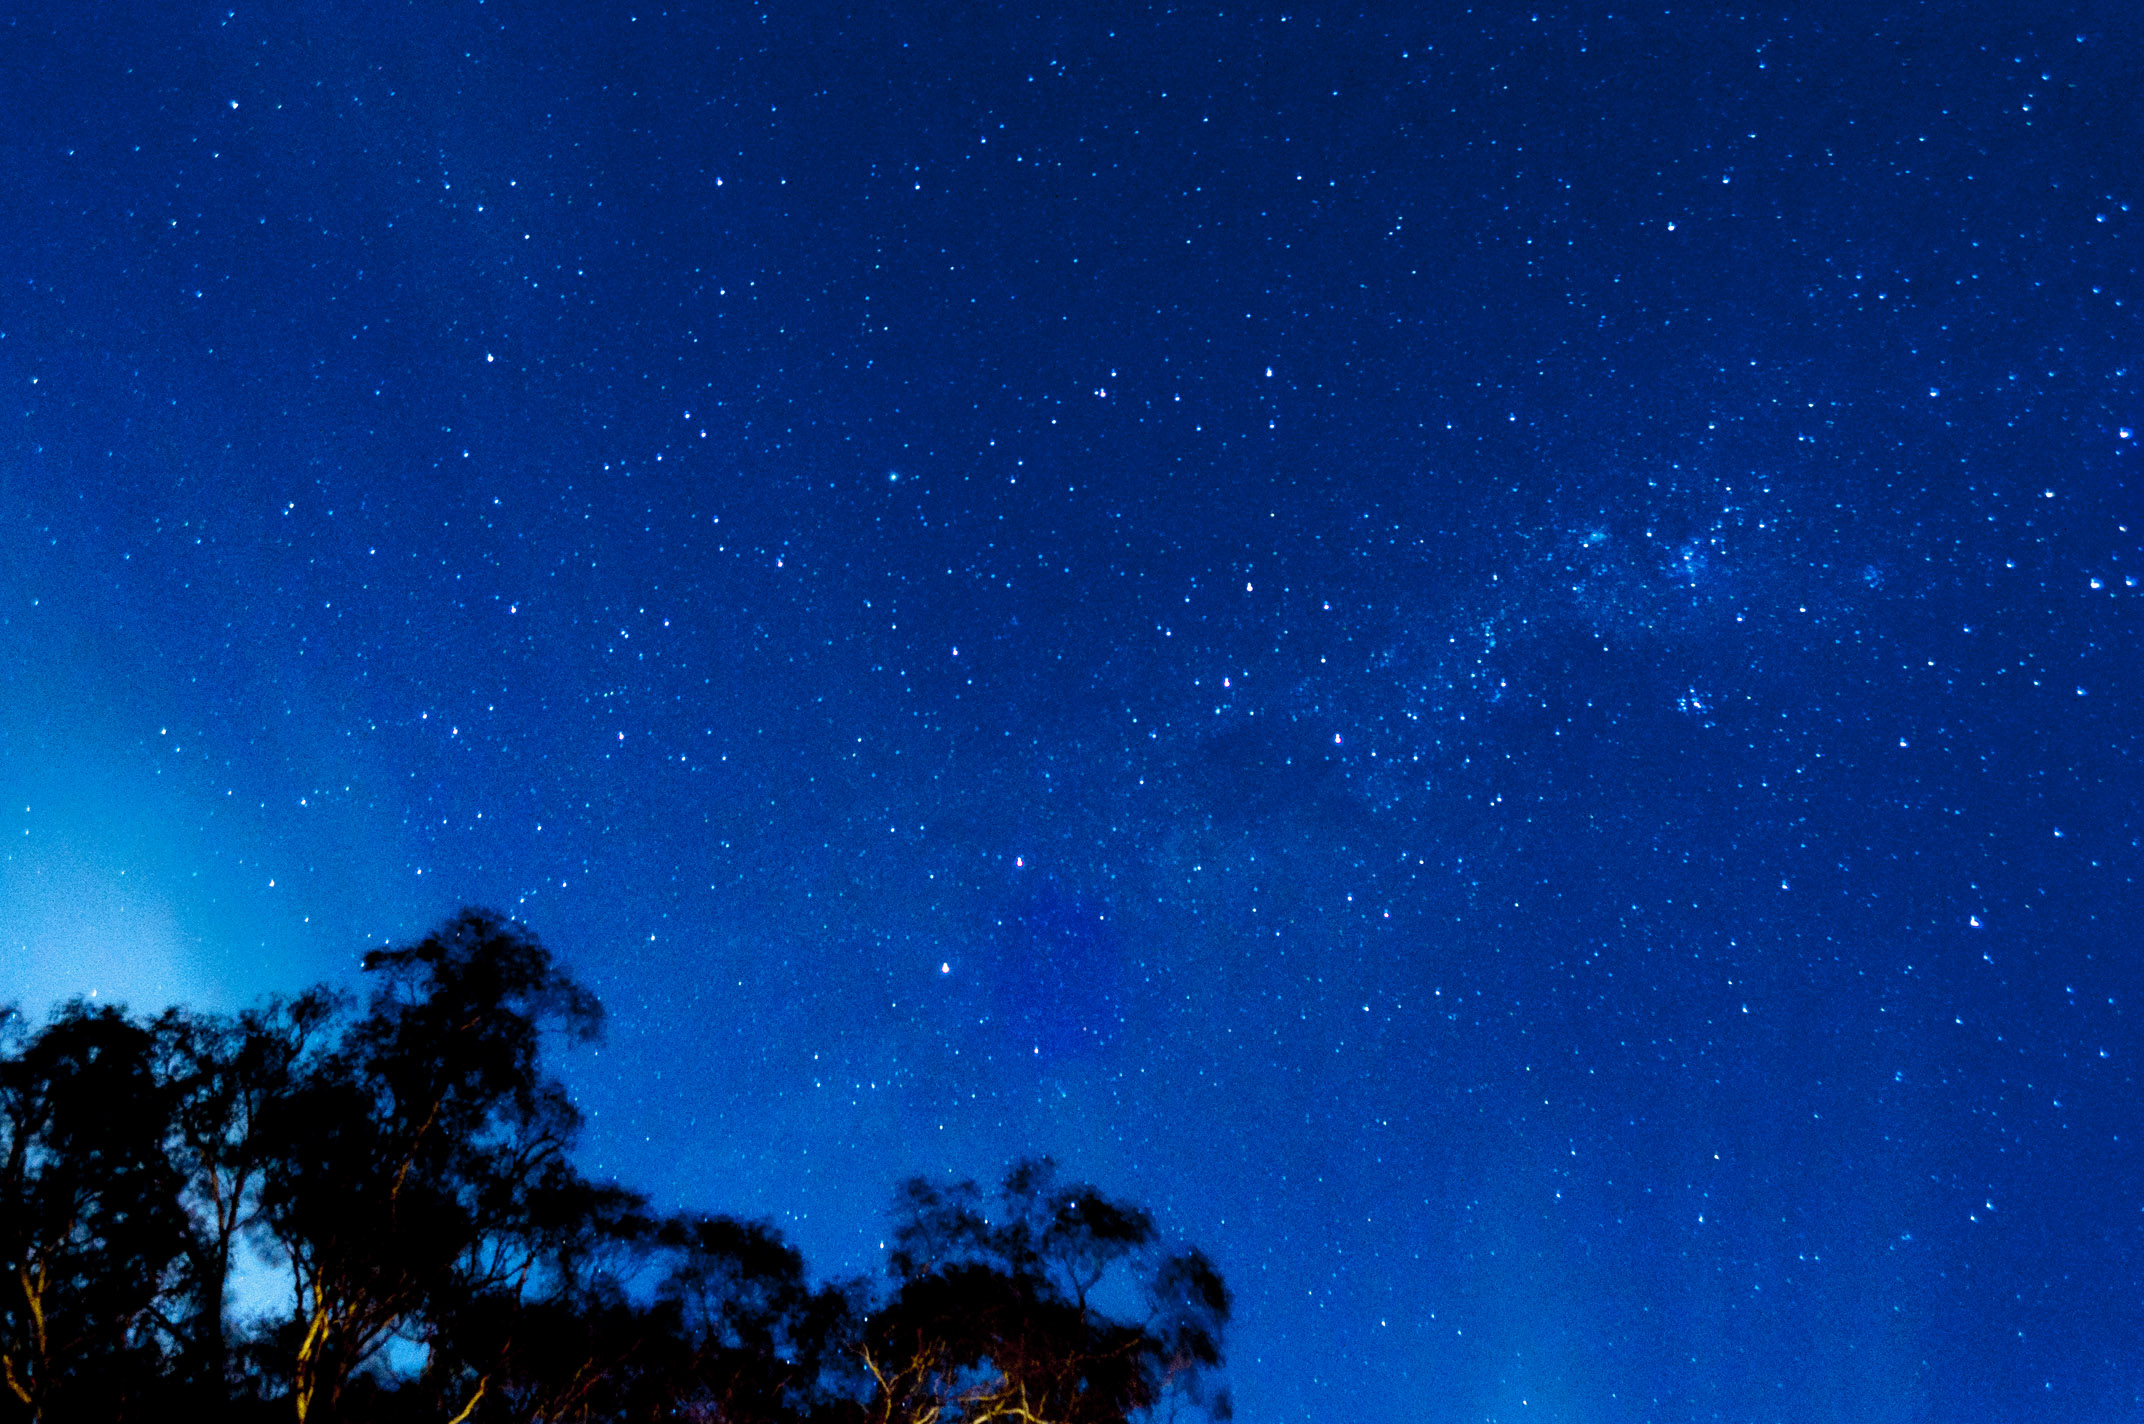 ♥	Southern Cross – Indigo Skies Photography, Flickr